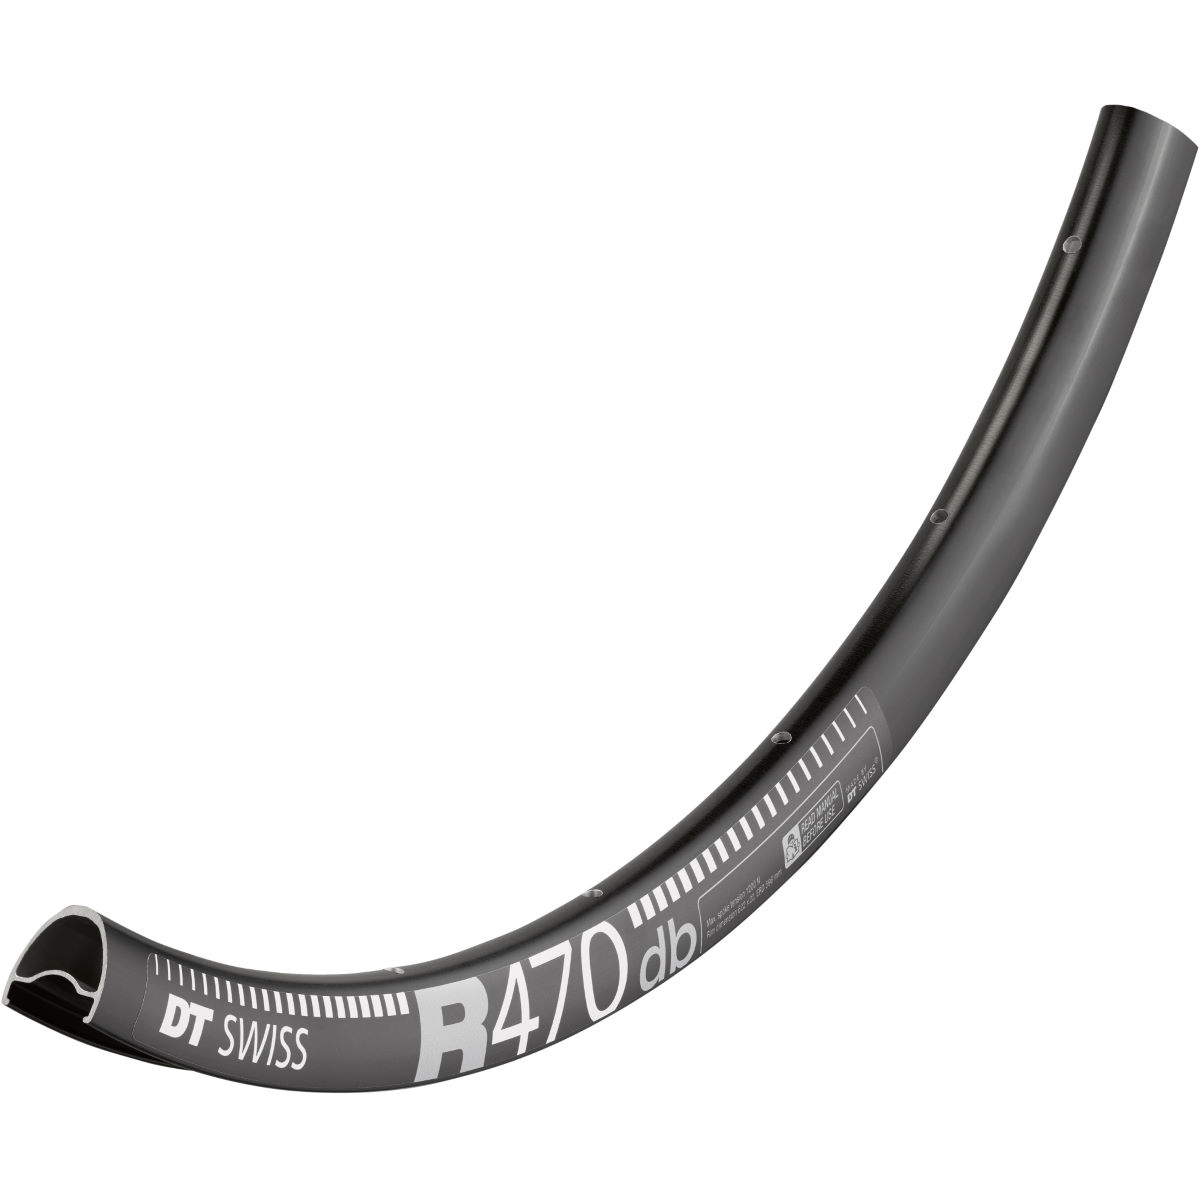 DT Swiss R 470 Disc Brake 20mm Road Rim - Llantas